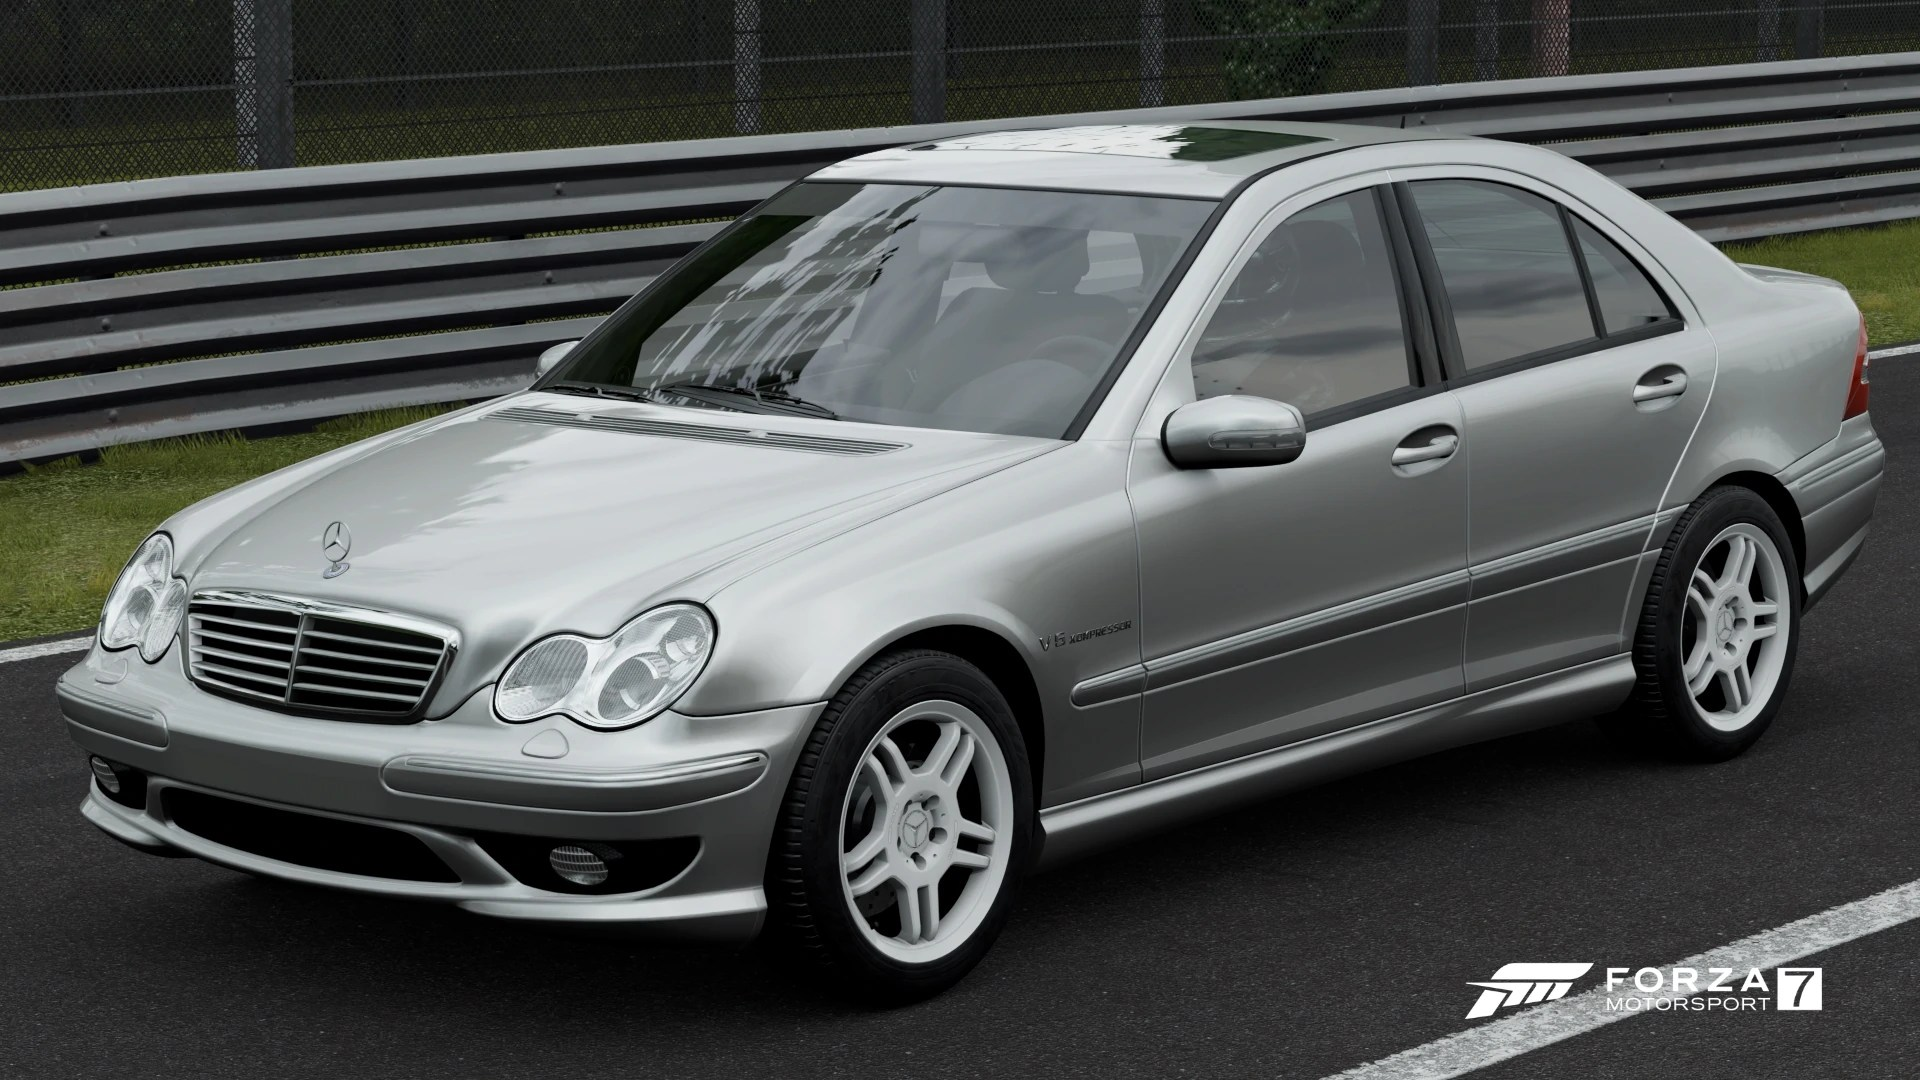 hight resolution of mercedes benz c 32 amg in forza motorsport 7